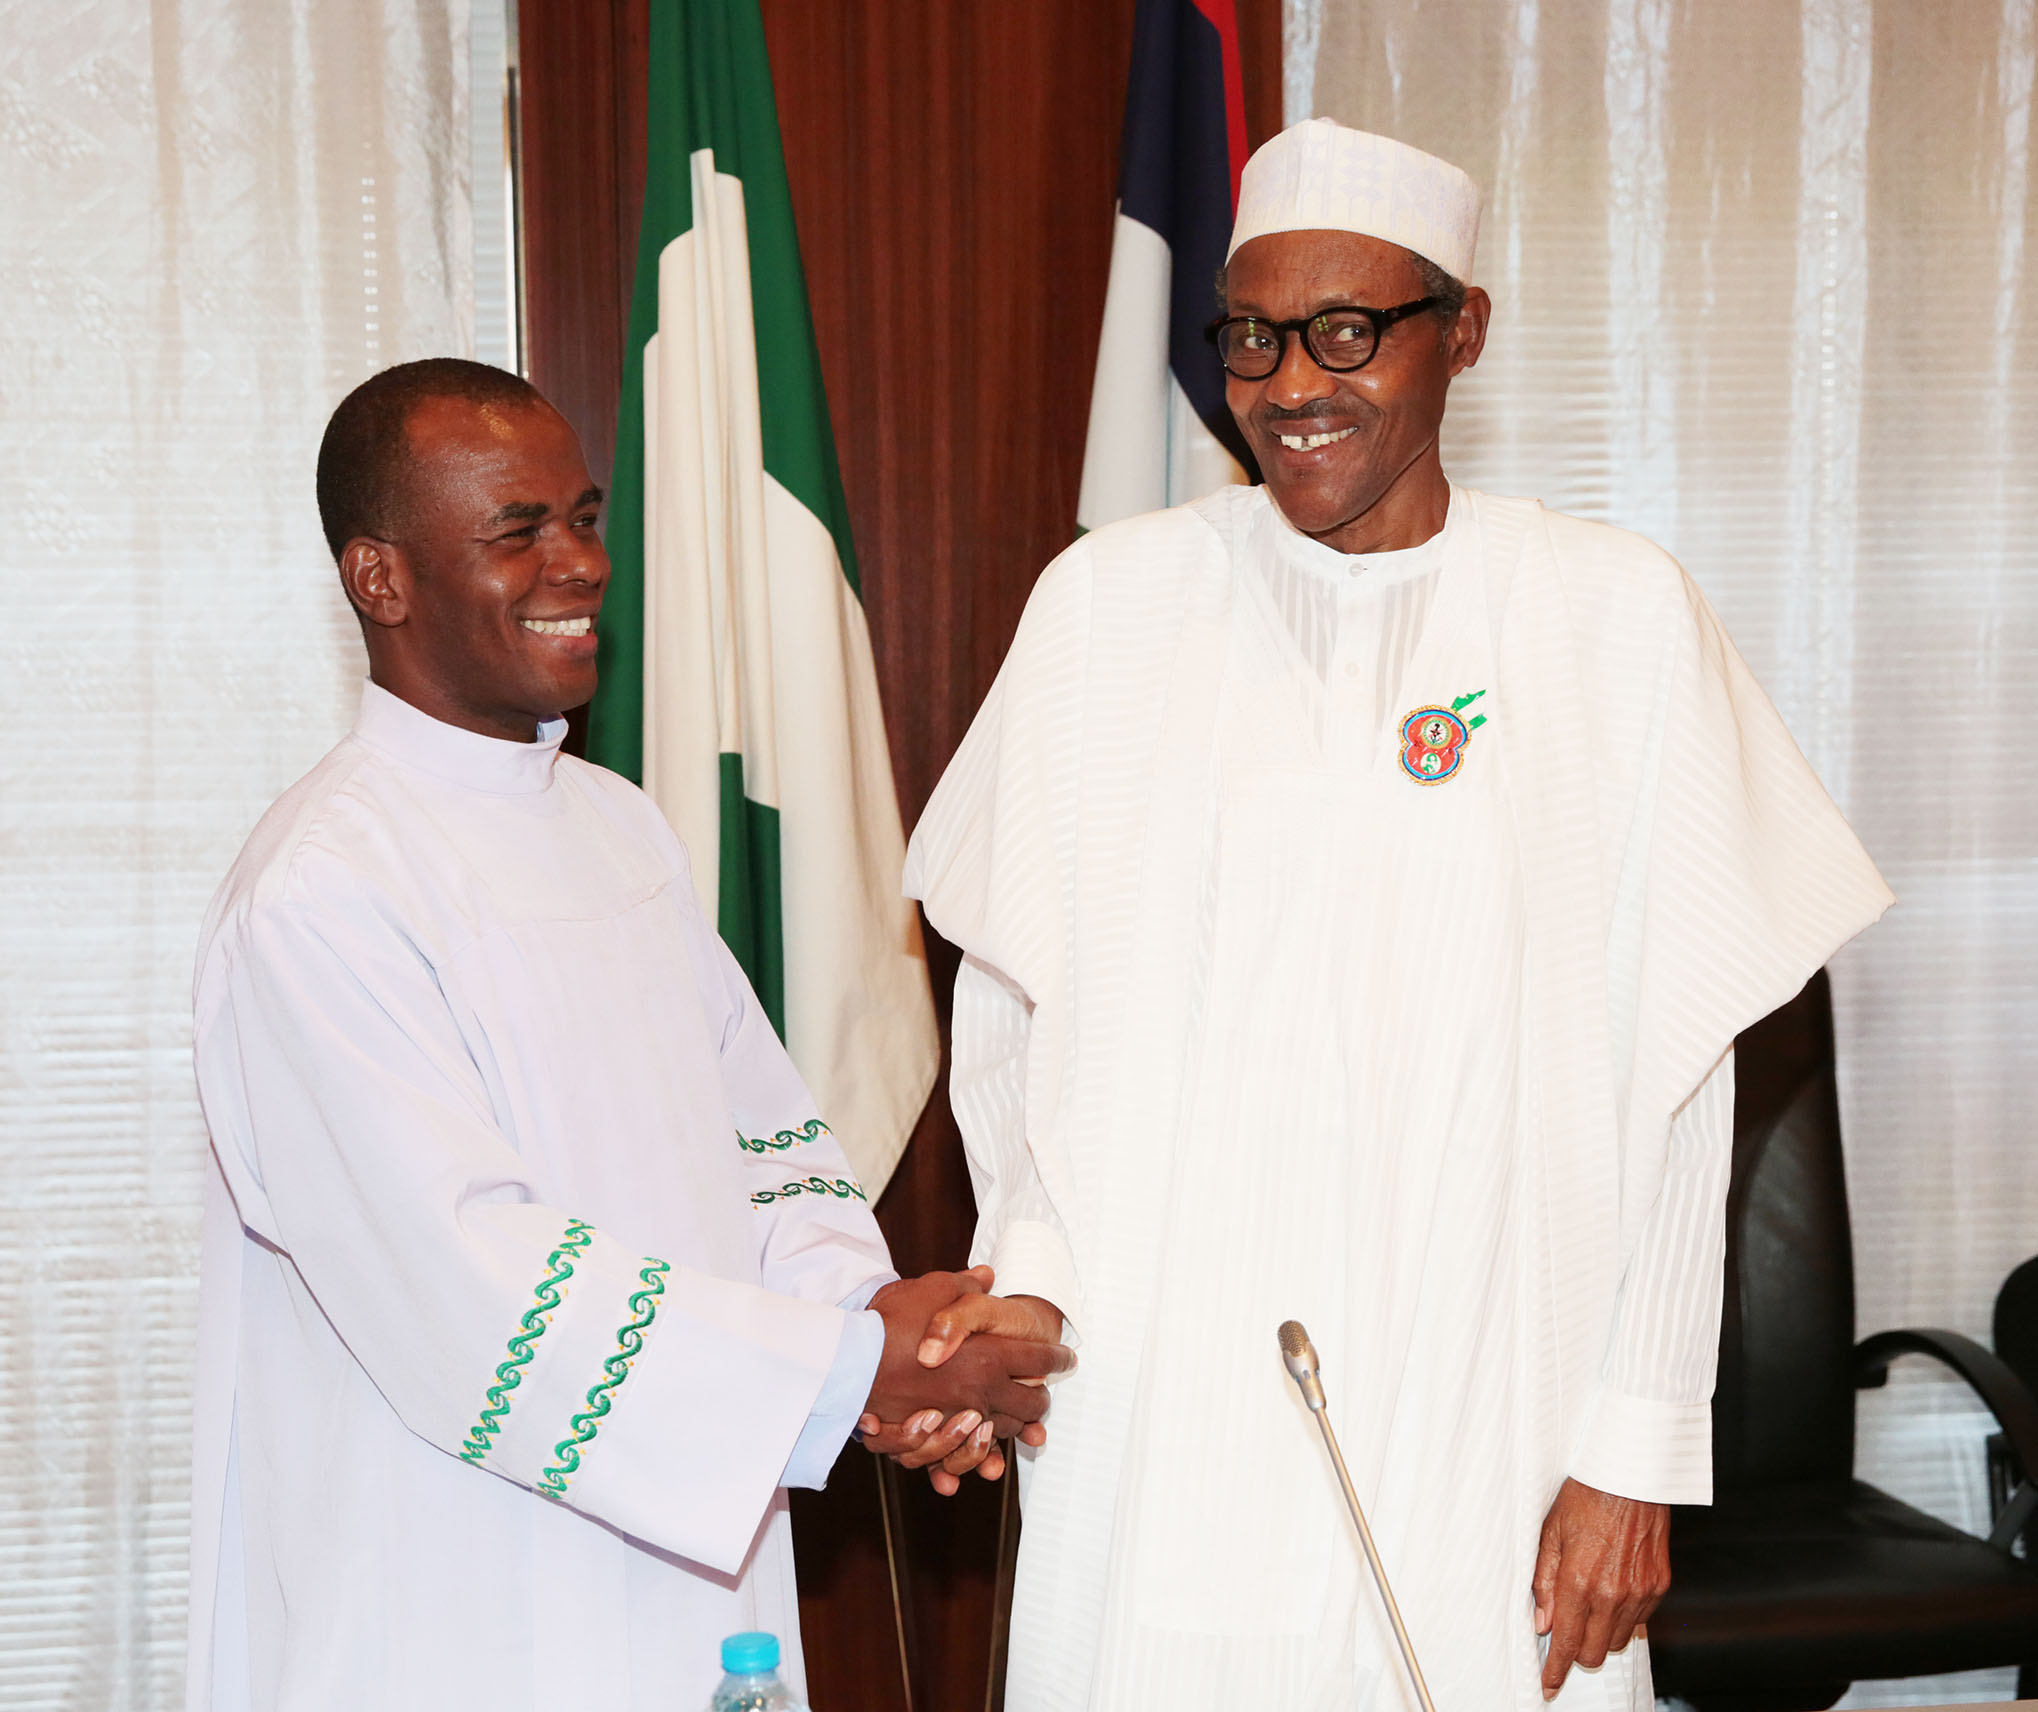 PRESIDENT BUHARI RECEIVES REV FR MBAKA. R-L; President Muhammadu Buhari and Rev Father Mbaka during an audience with President Buhari at the State House. DEC 18 2015.